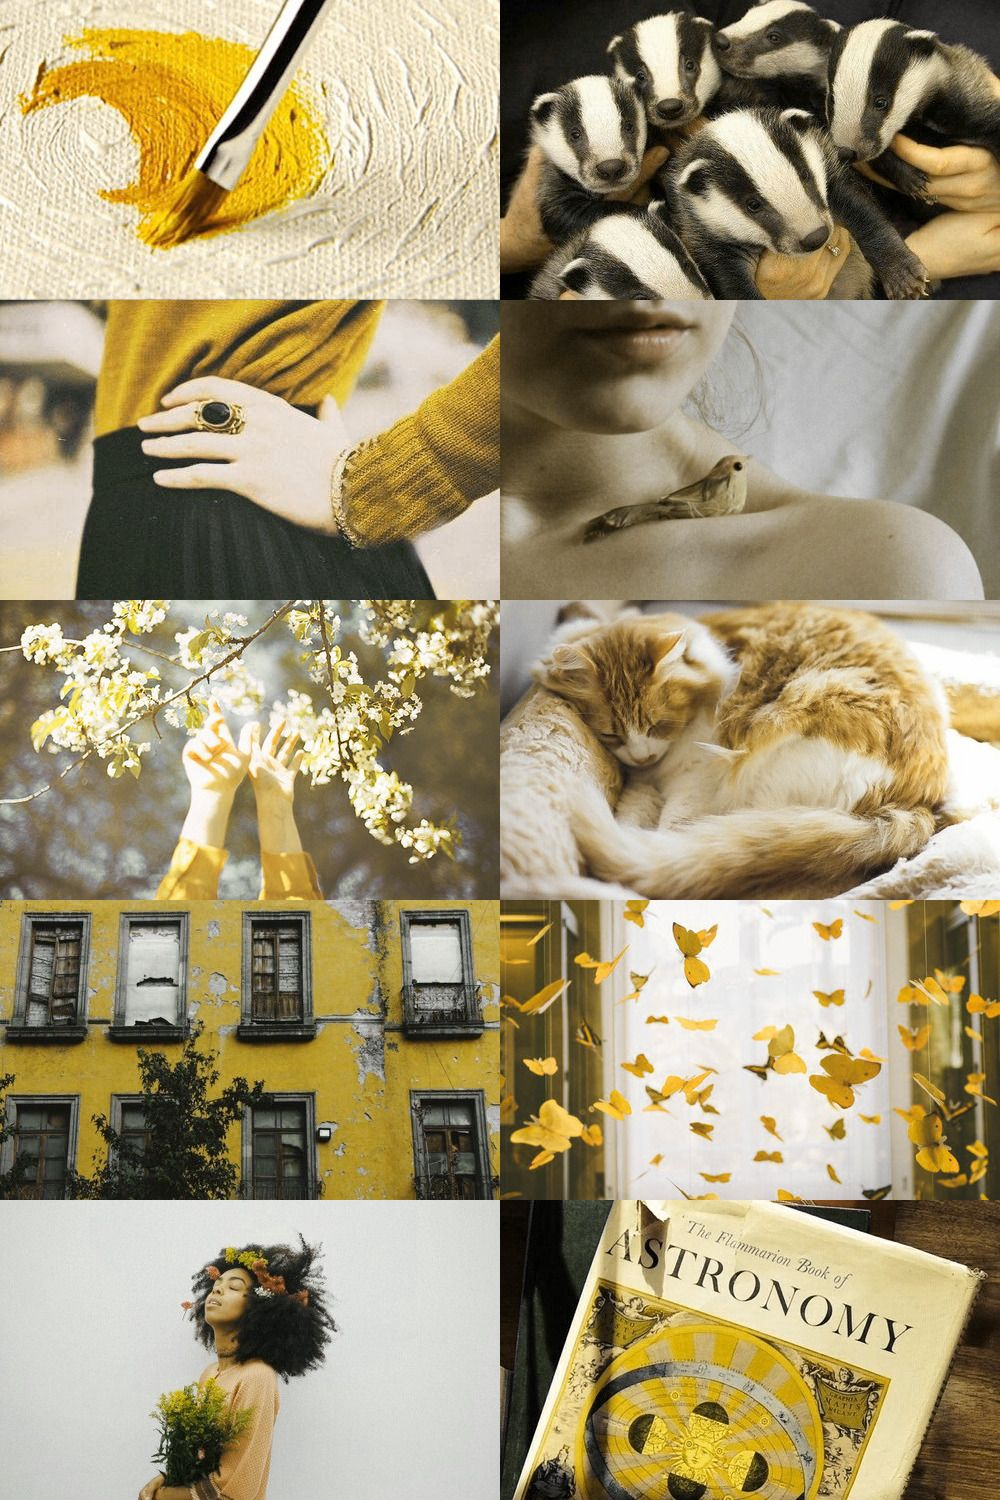 Hufflepuff Aesthetic Again With The Amazing Aesthetics And Those